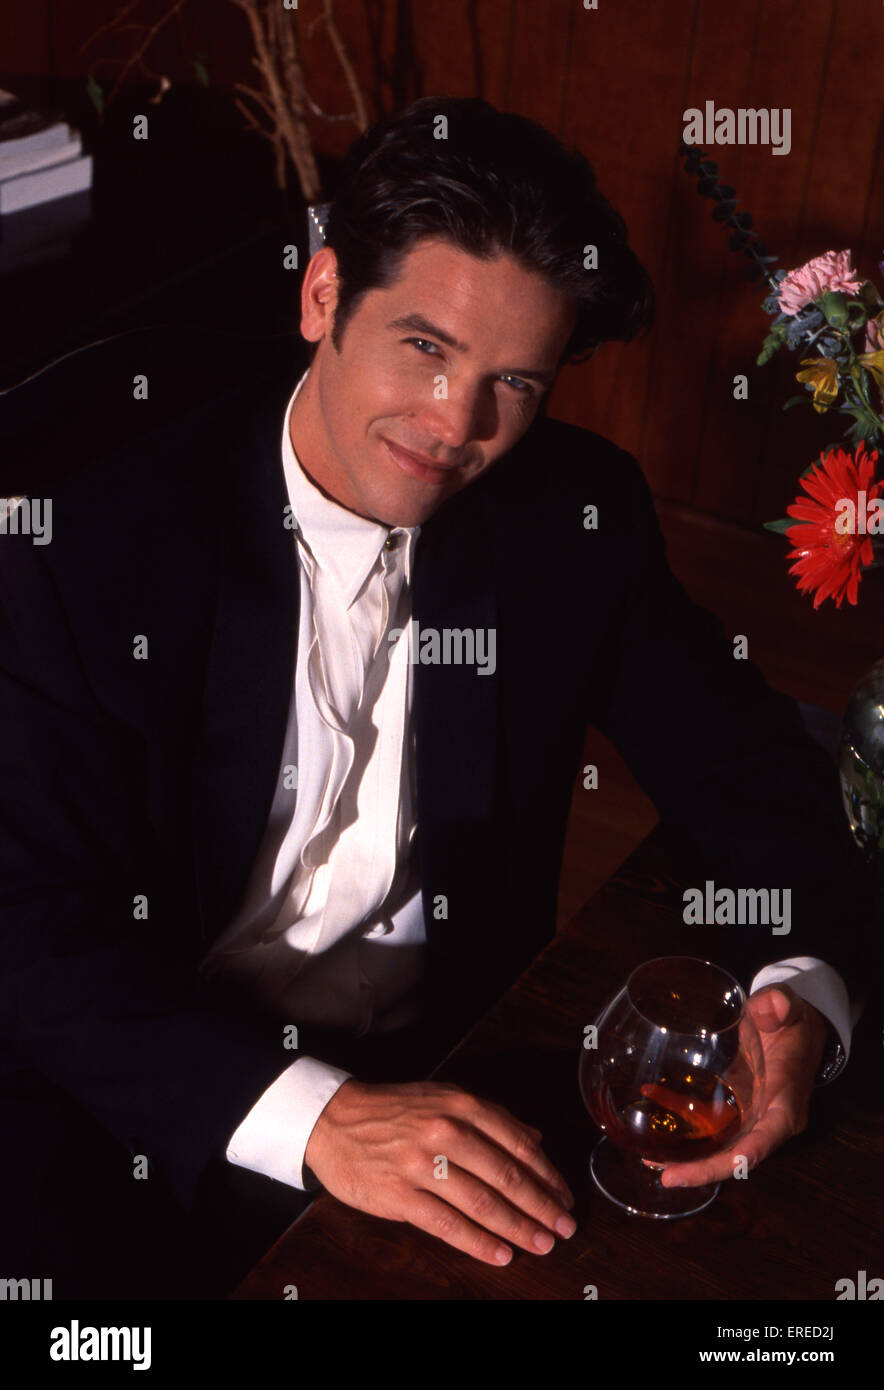 Michael Damian, portrait, Los Angeles, USA. American actor, singer and producer, b April 26, 1962 -. Stock Photo